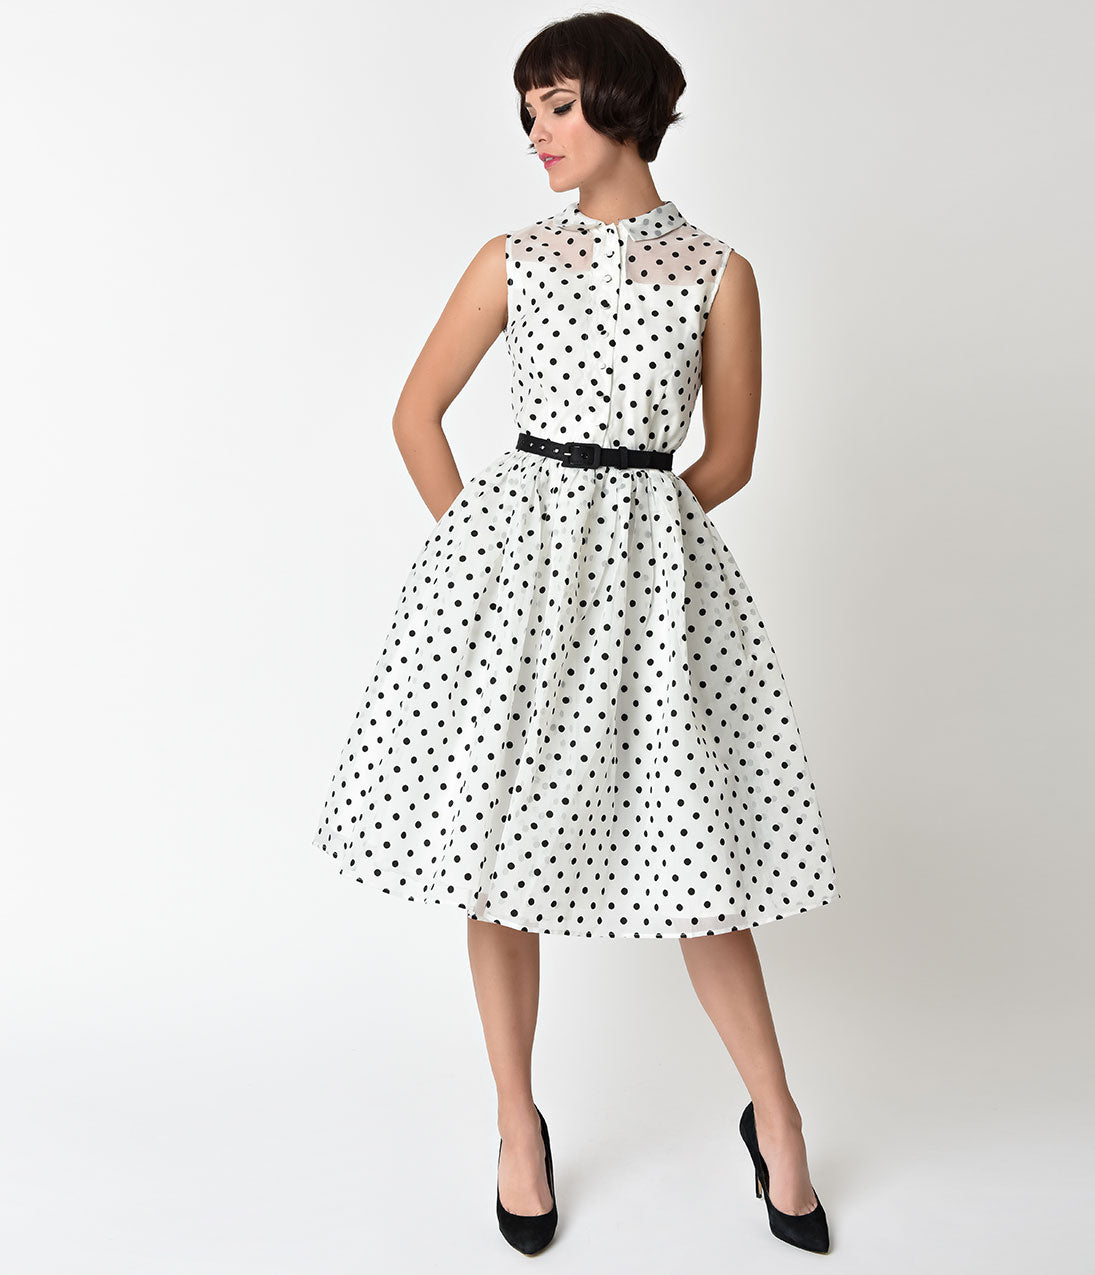 White & Black Dotted Organza Georgia Swing Dress